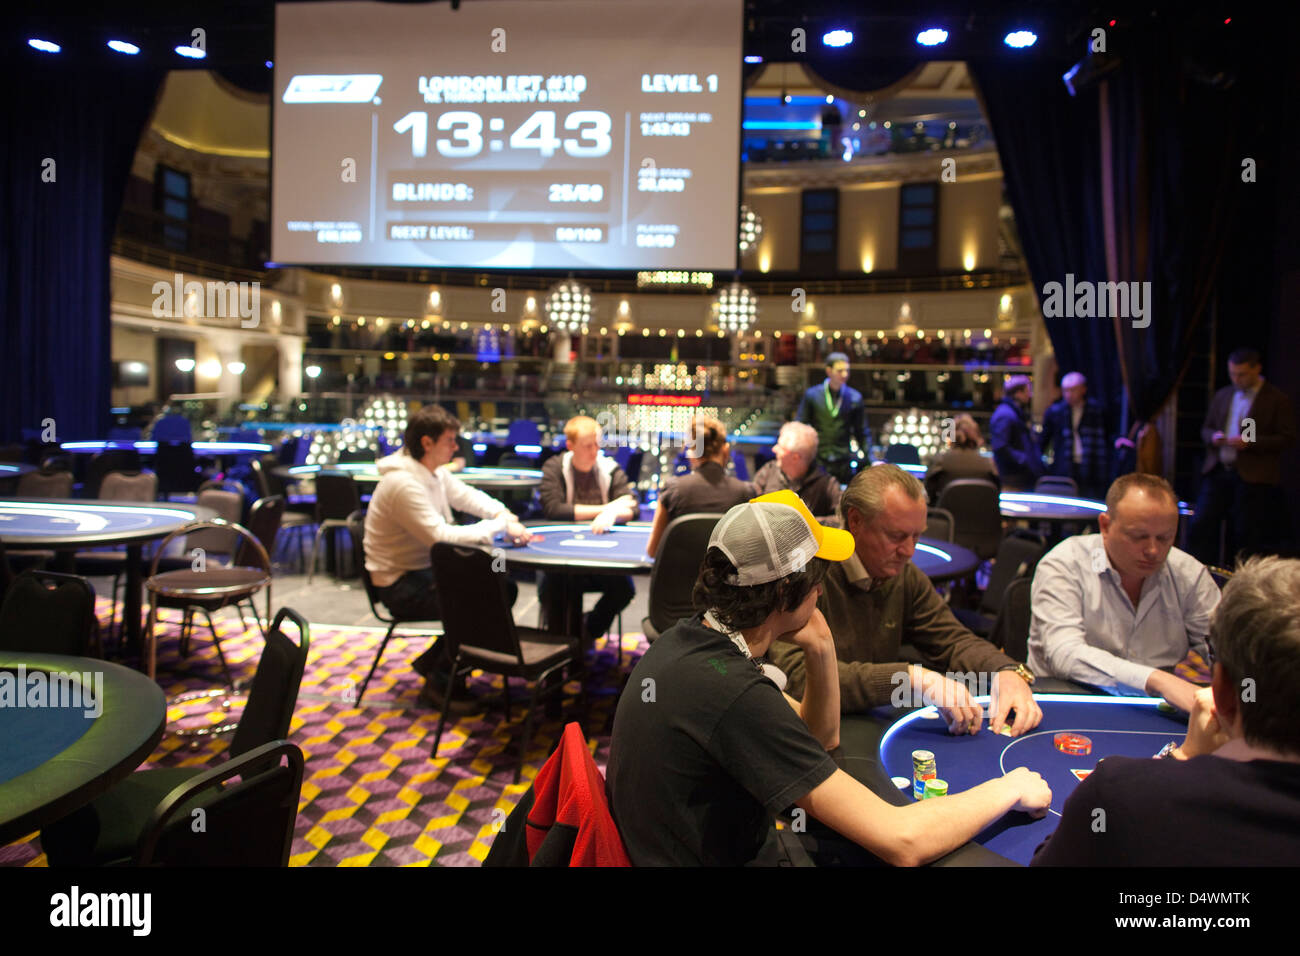 casino poker tournaments london